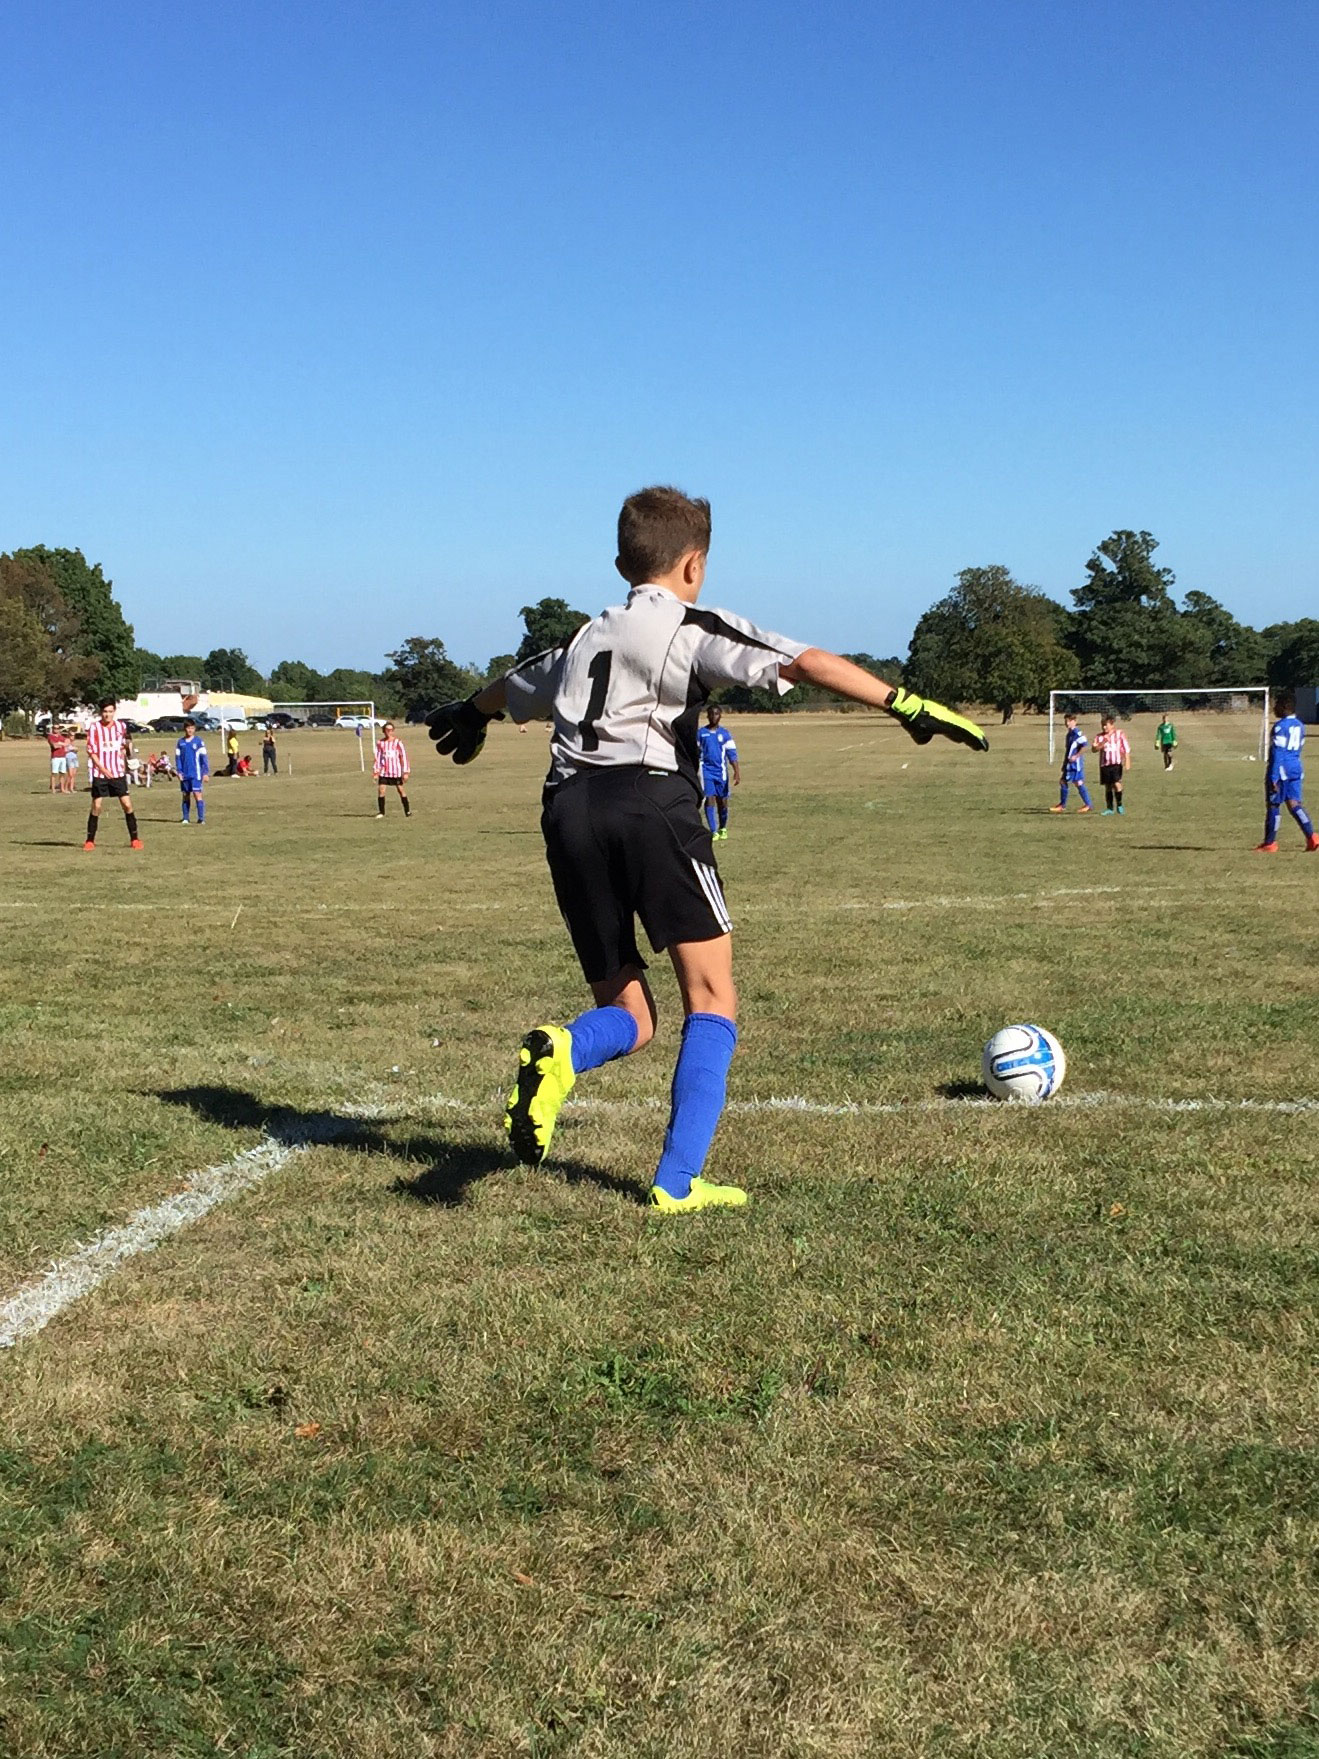 Does your child choose to take their own goal kicks?